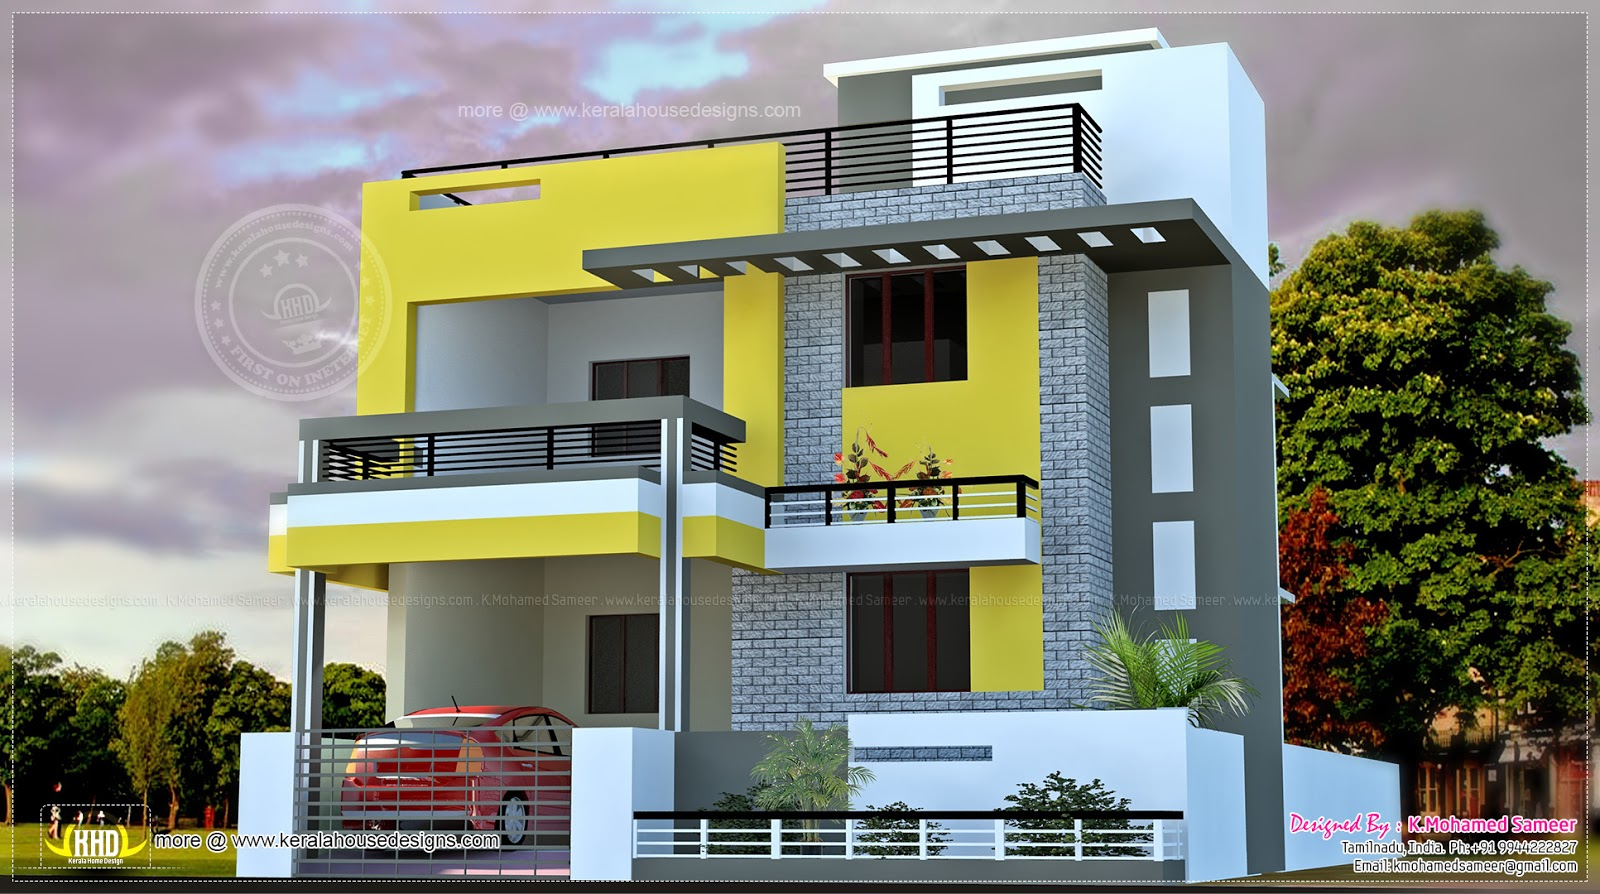 India house plan in modern style kerala home design and for House architecture styles in india